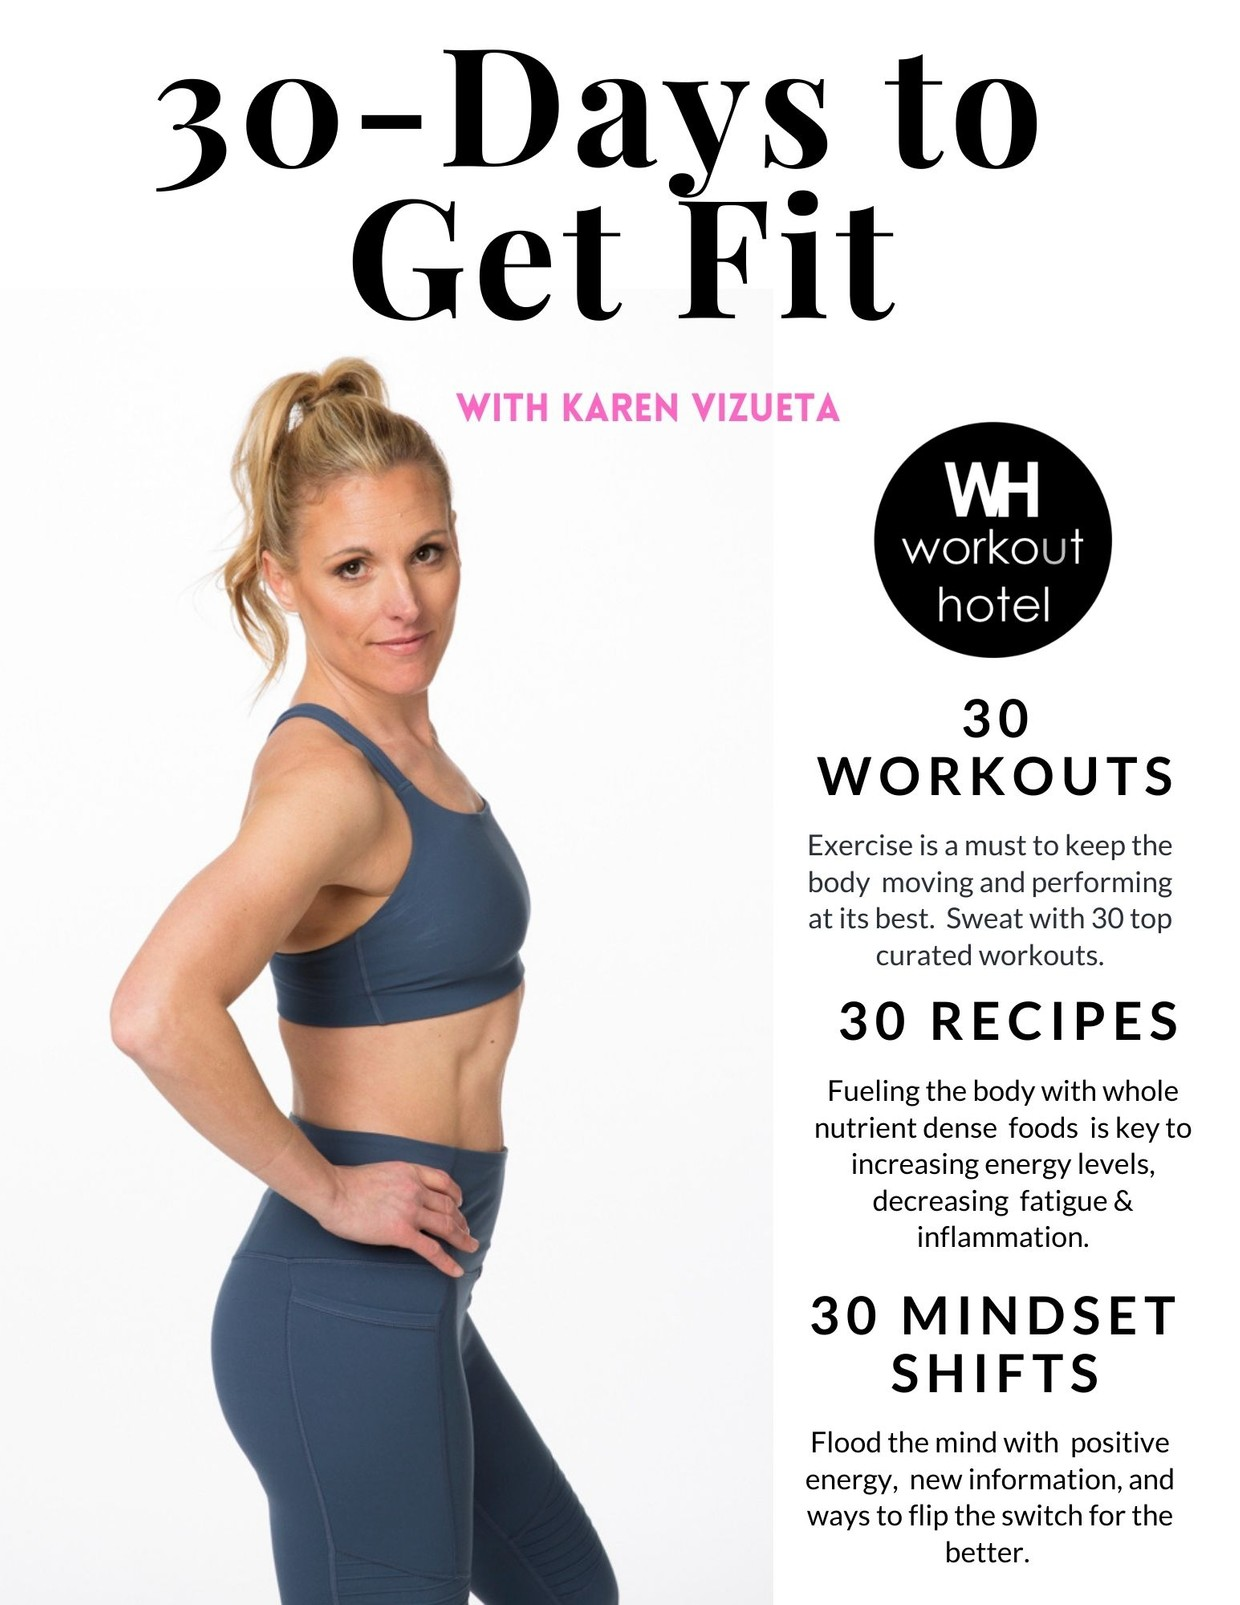 30 Days to Get Fit: E-BOOK